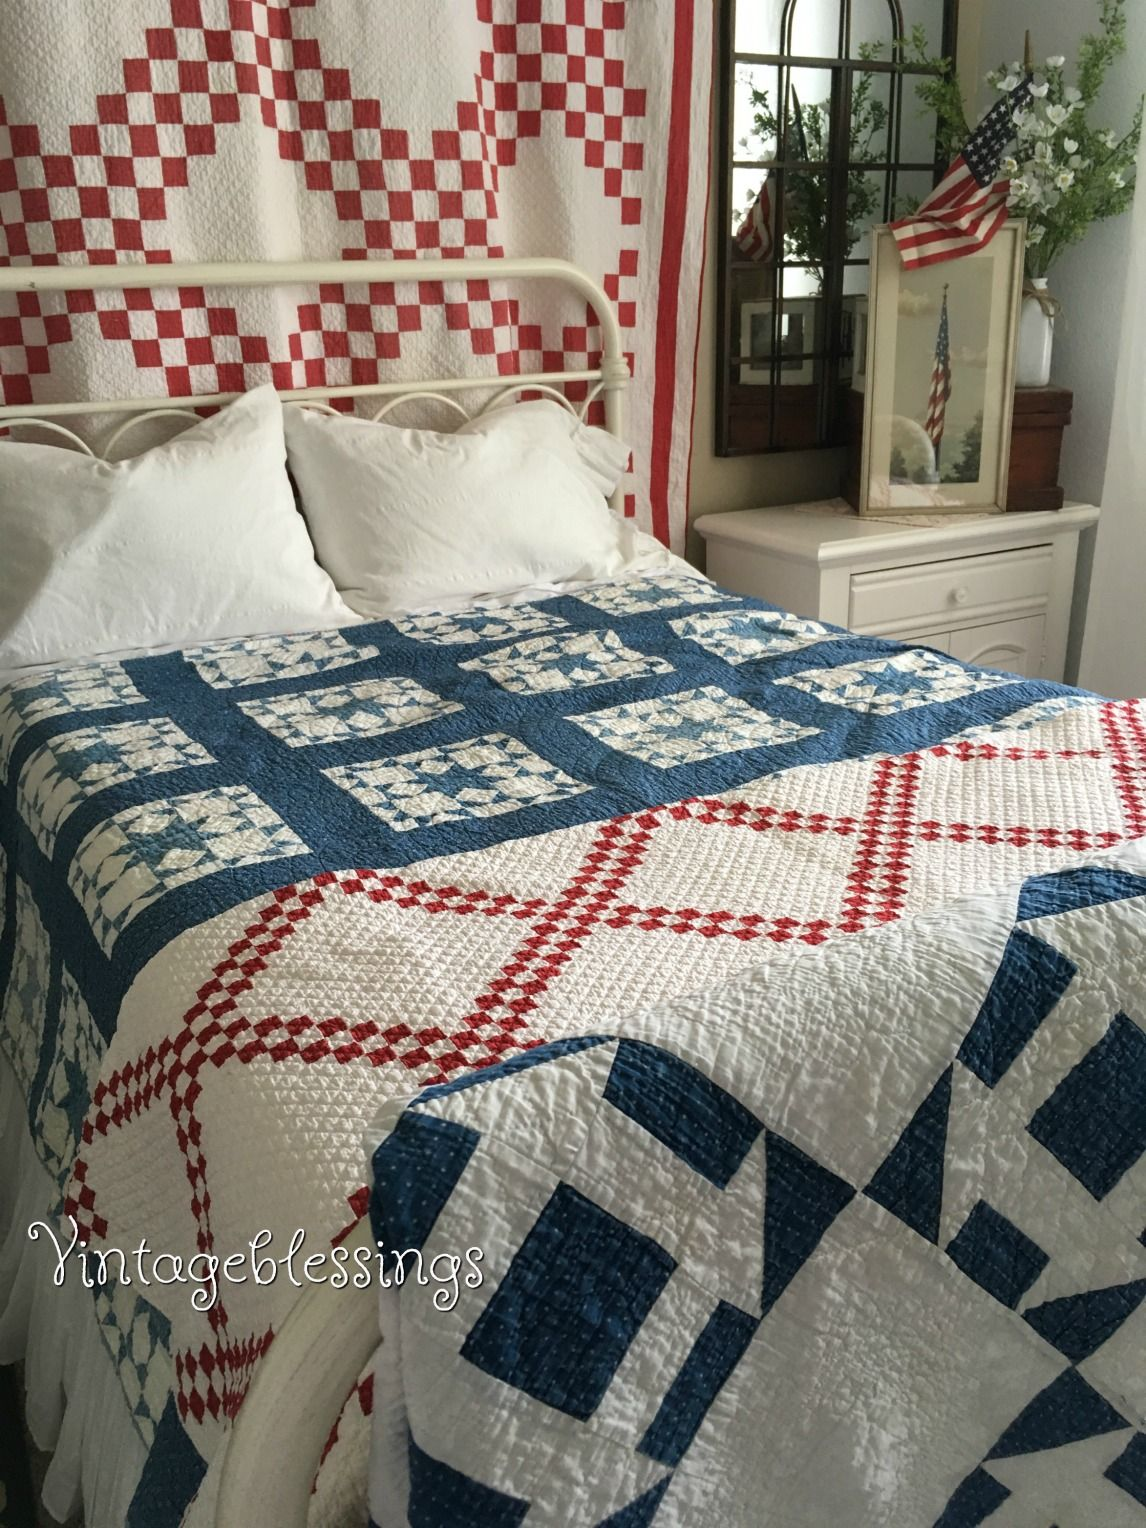 We love decorating in the Americana style. Here we have layered